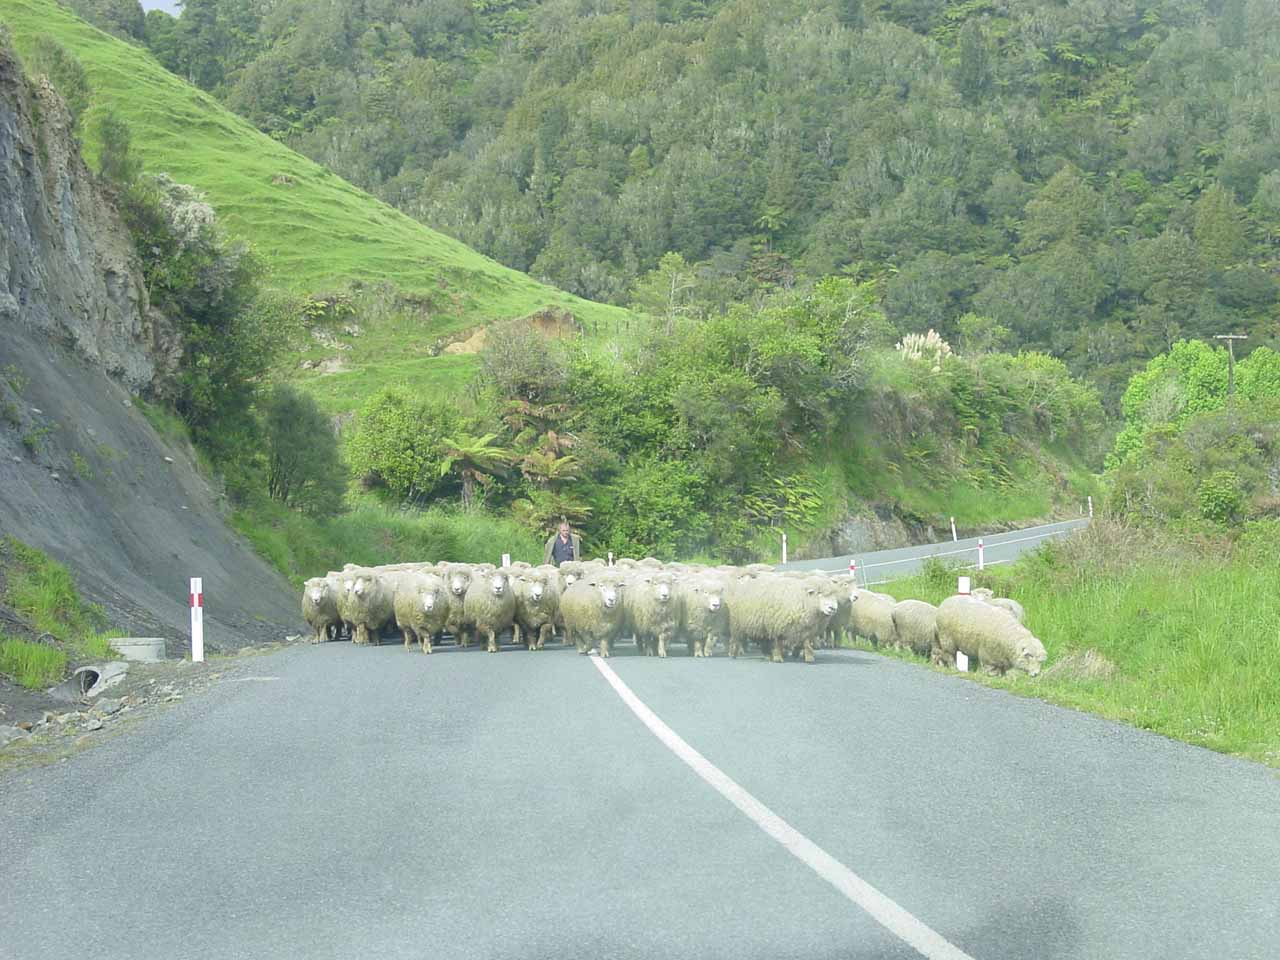 The first time we drove the Forgotten World Hwy, we encountered this situation where we would literally be surrounded by sheep